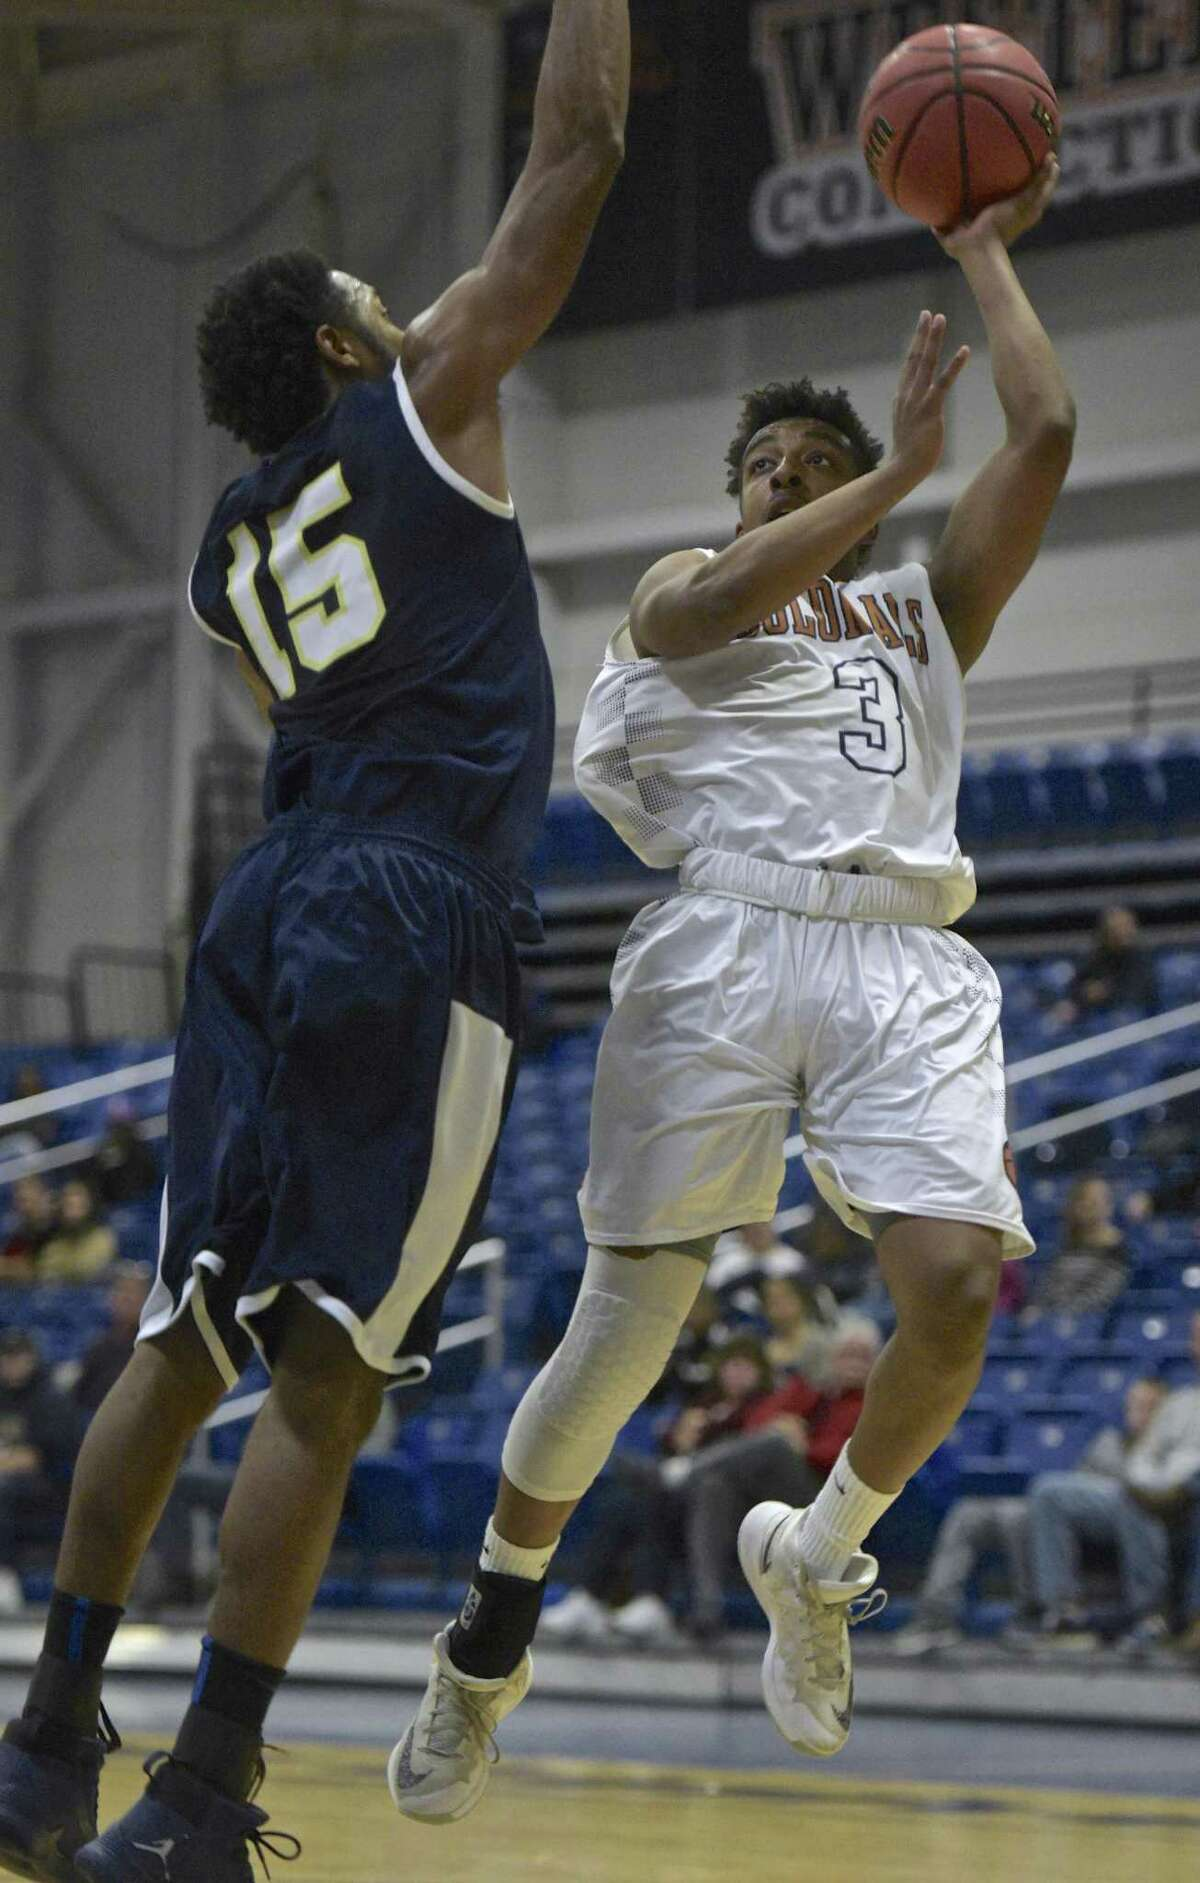 Westconn's Tyler Rowe (3) goes to shoot over Trinity's Kyle Padmore (15) in the Men's basketball game between Trinity College and Western Connecticut State University on Thursday night, November 30, 2017, at the O'Neil Center-Feldman Arena, Westside Campus of WCSU, in Danbury, Conn.